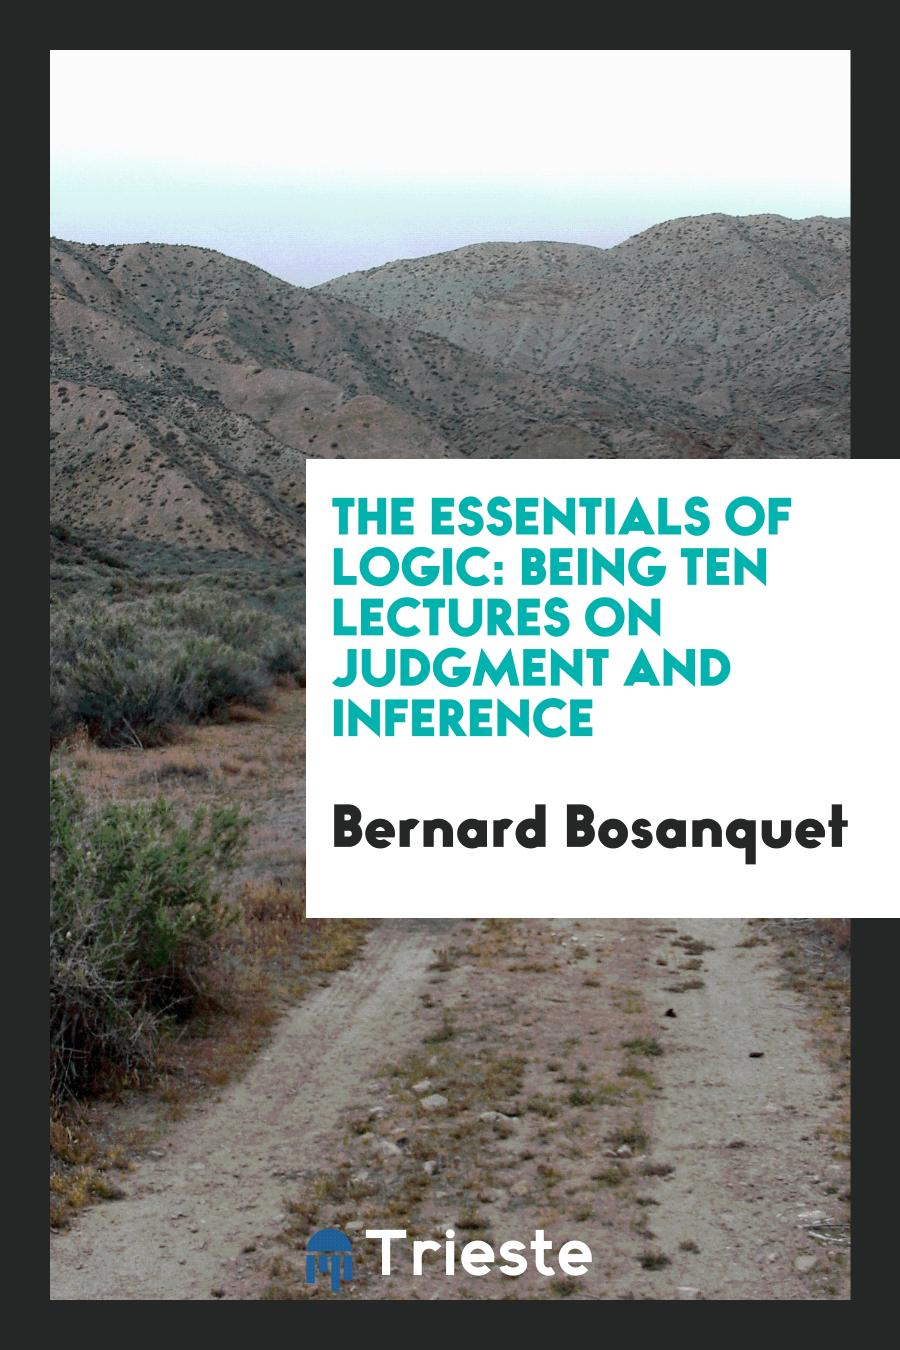 The Essentials of Logic: Being Ten Lectures on Judgment and Inference